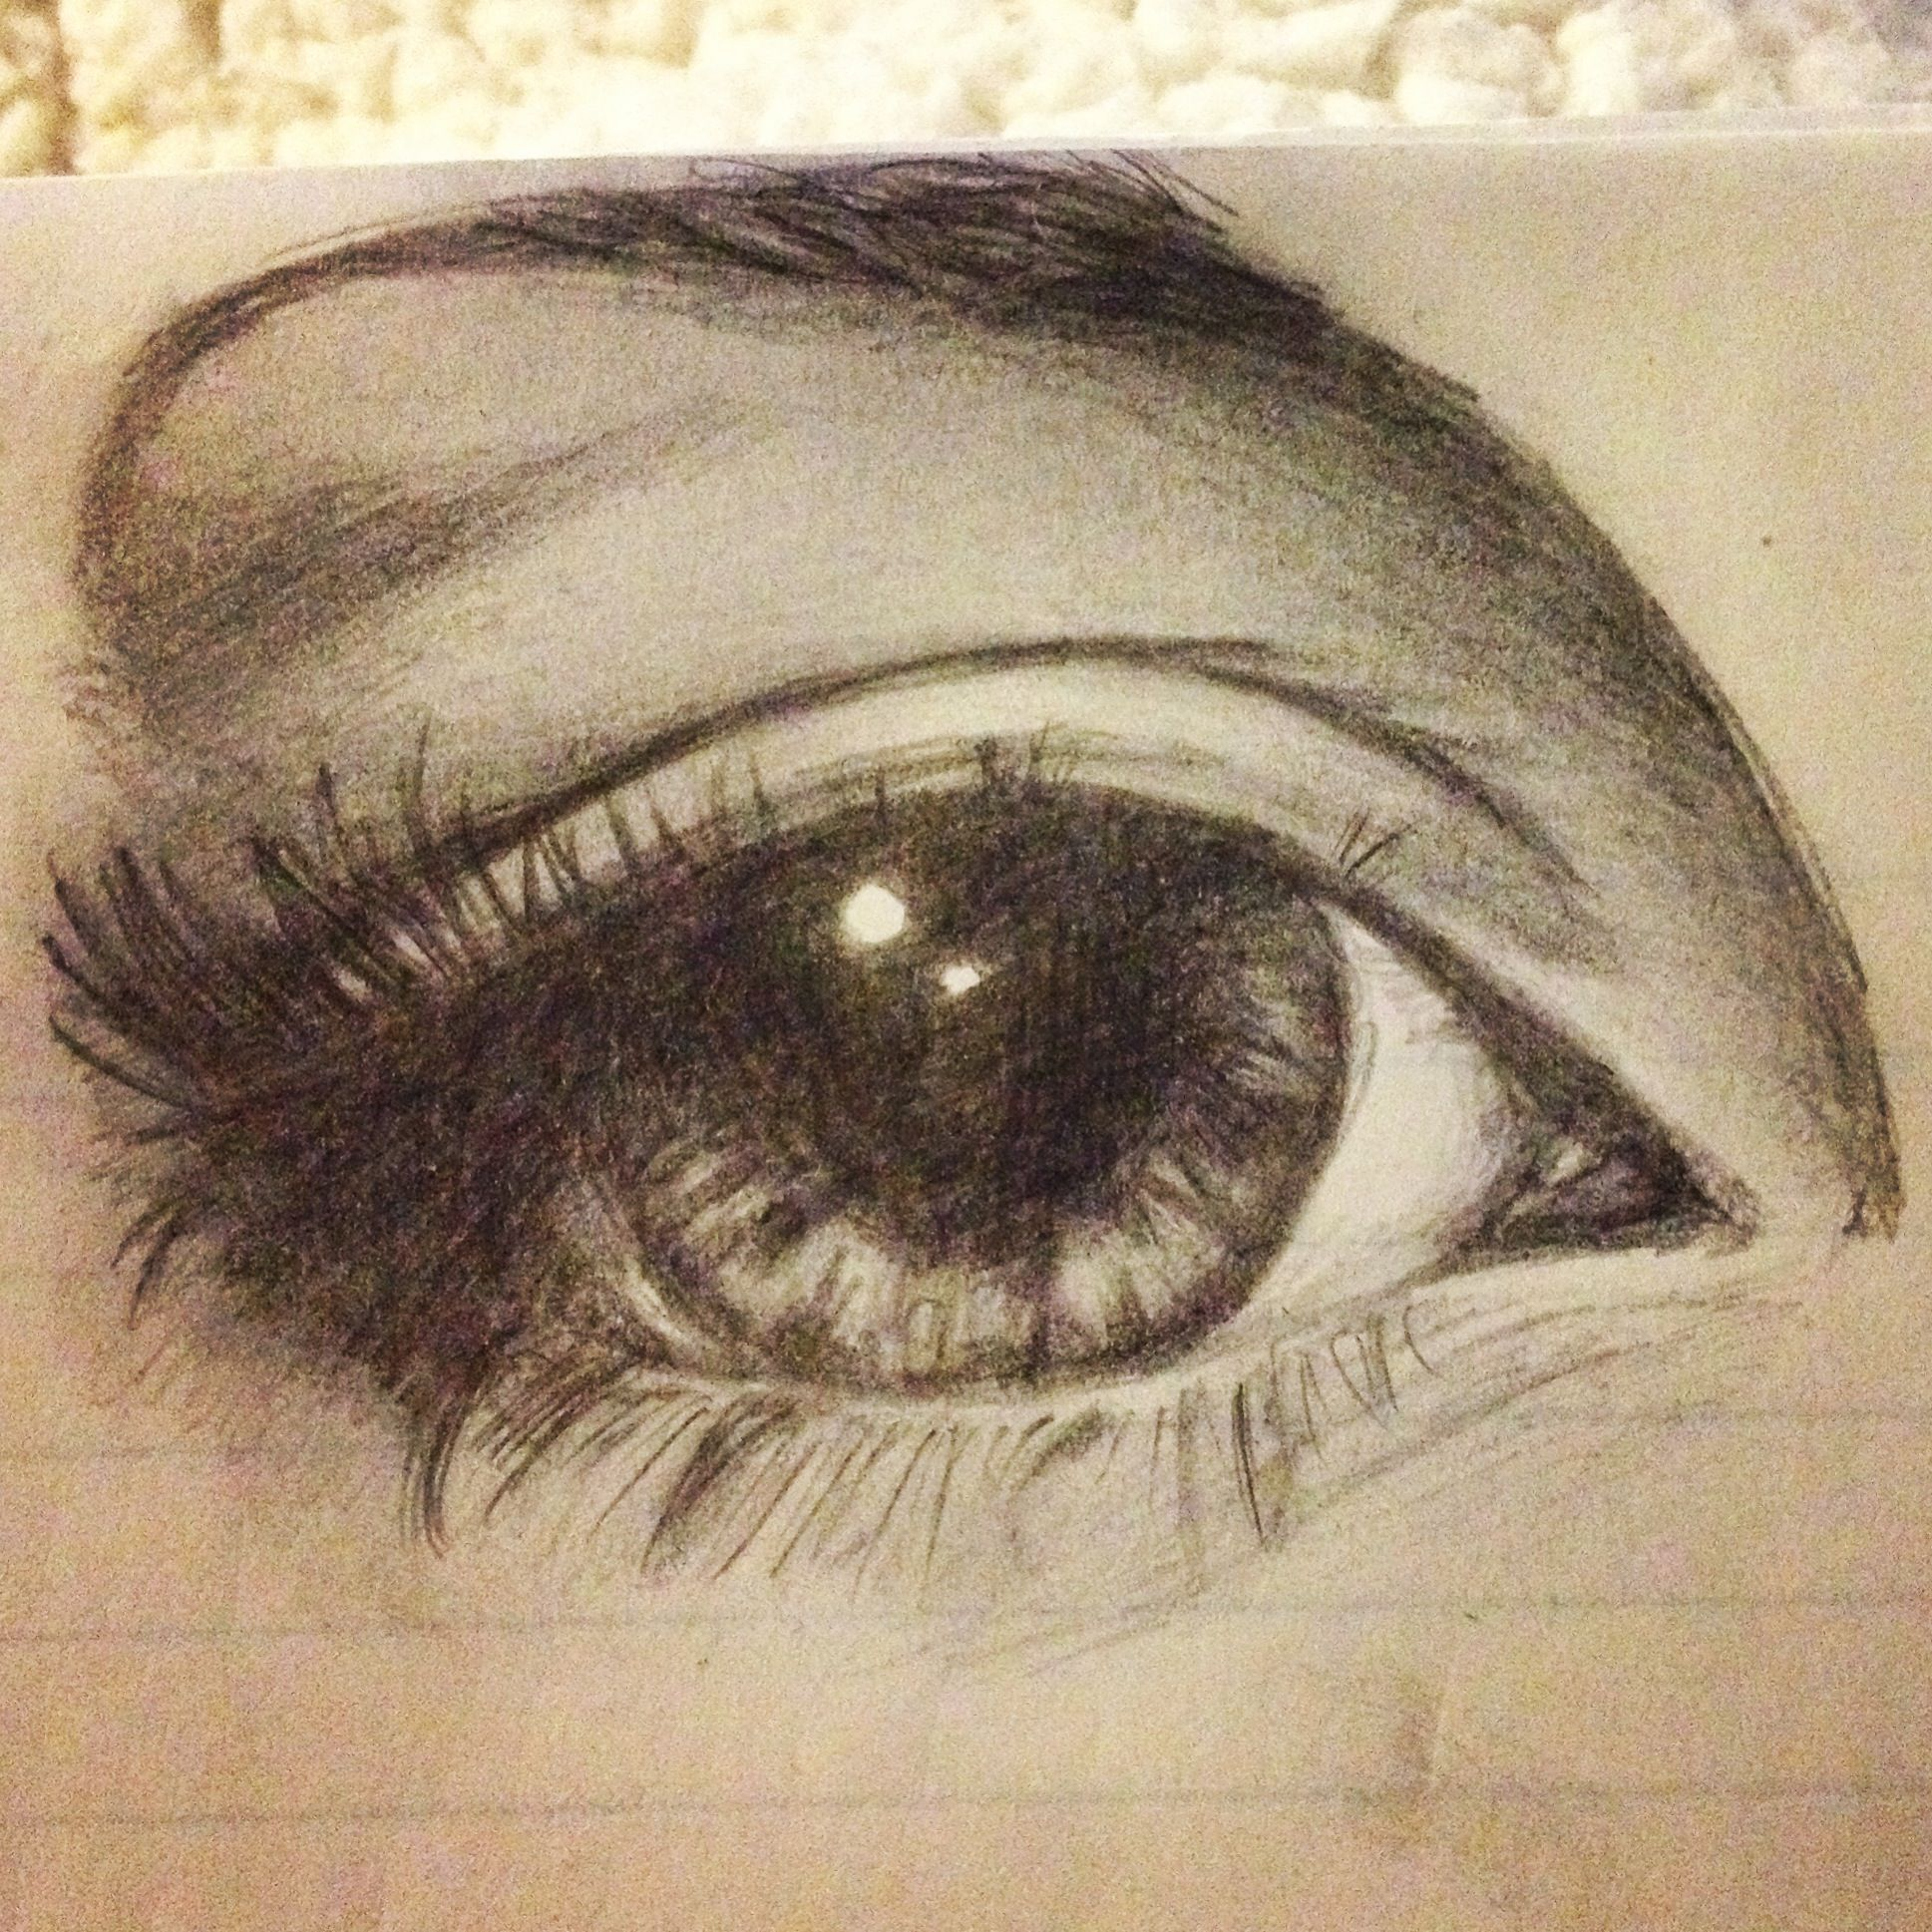 March 24 - 30 Skchallenge: Eye Short sketches of some eyes for everyone and anyone!